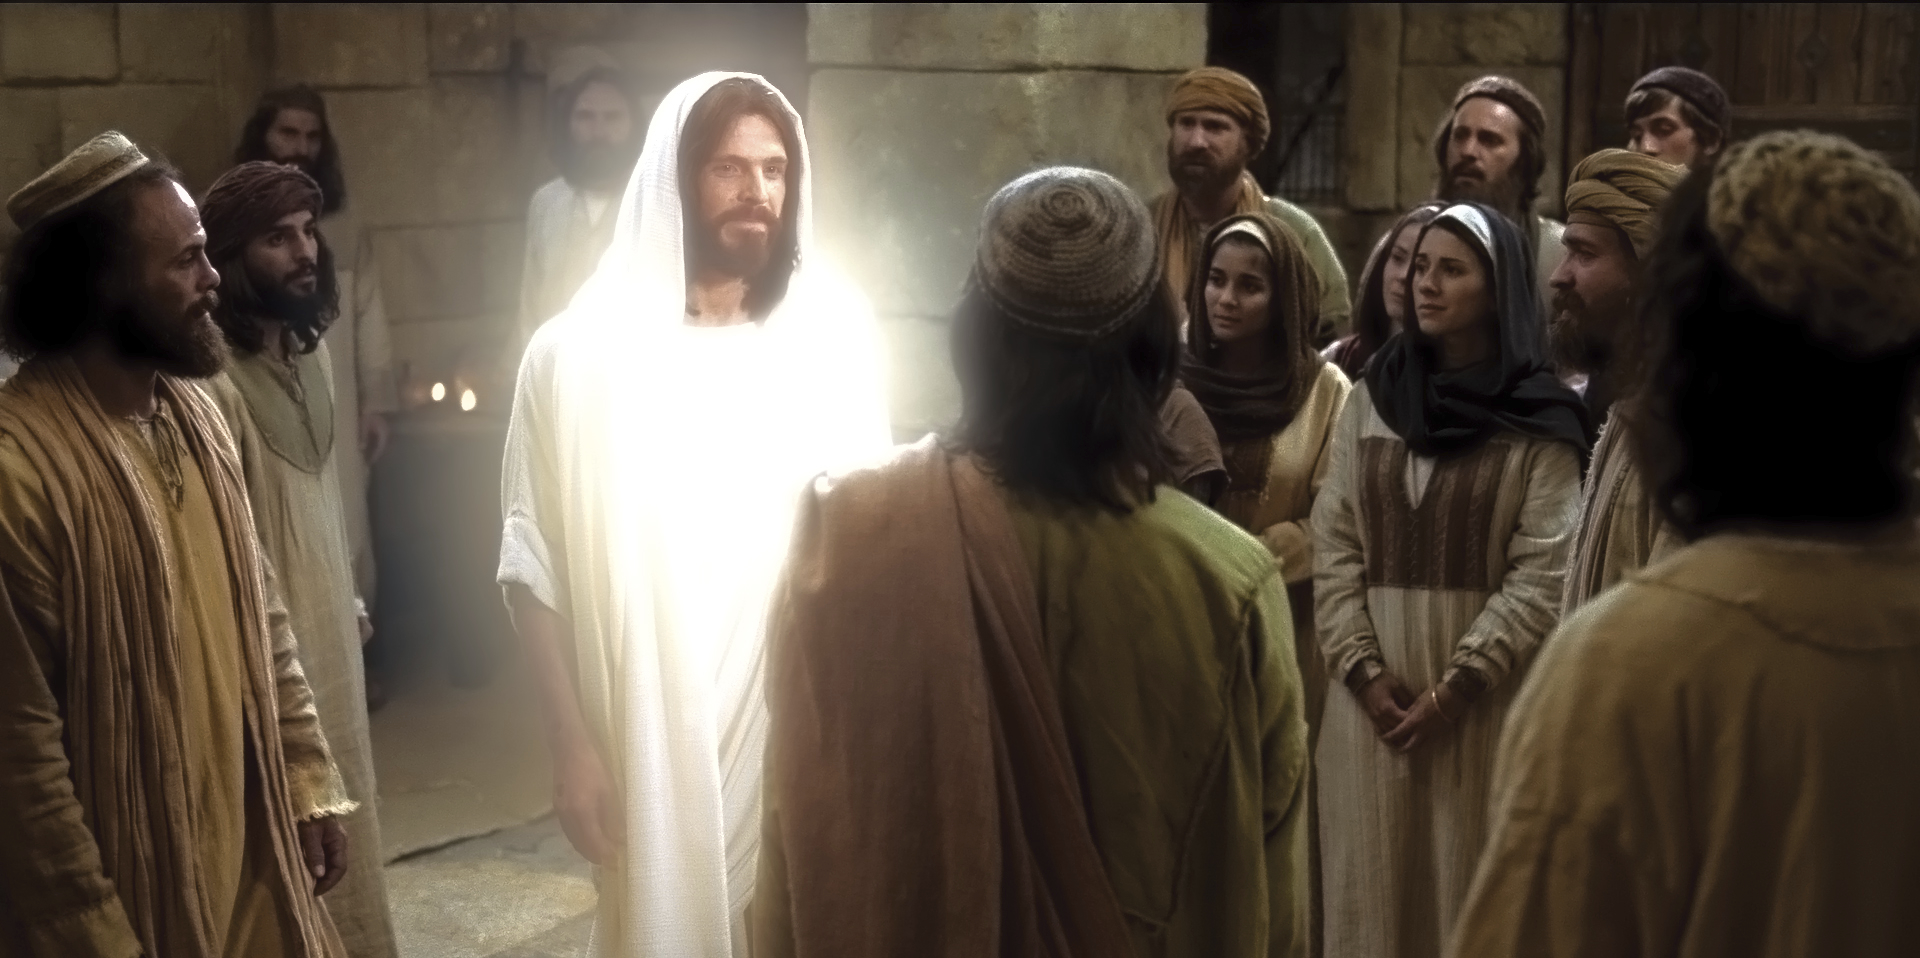 After His Resurrection, Christ appears to His disciples.